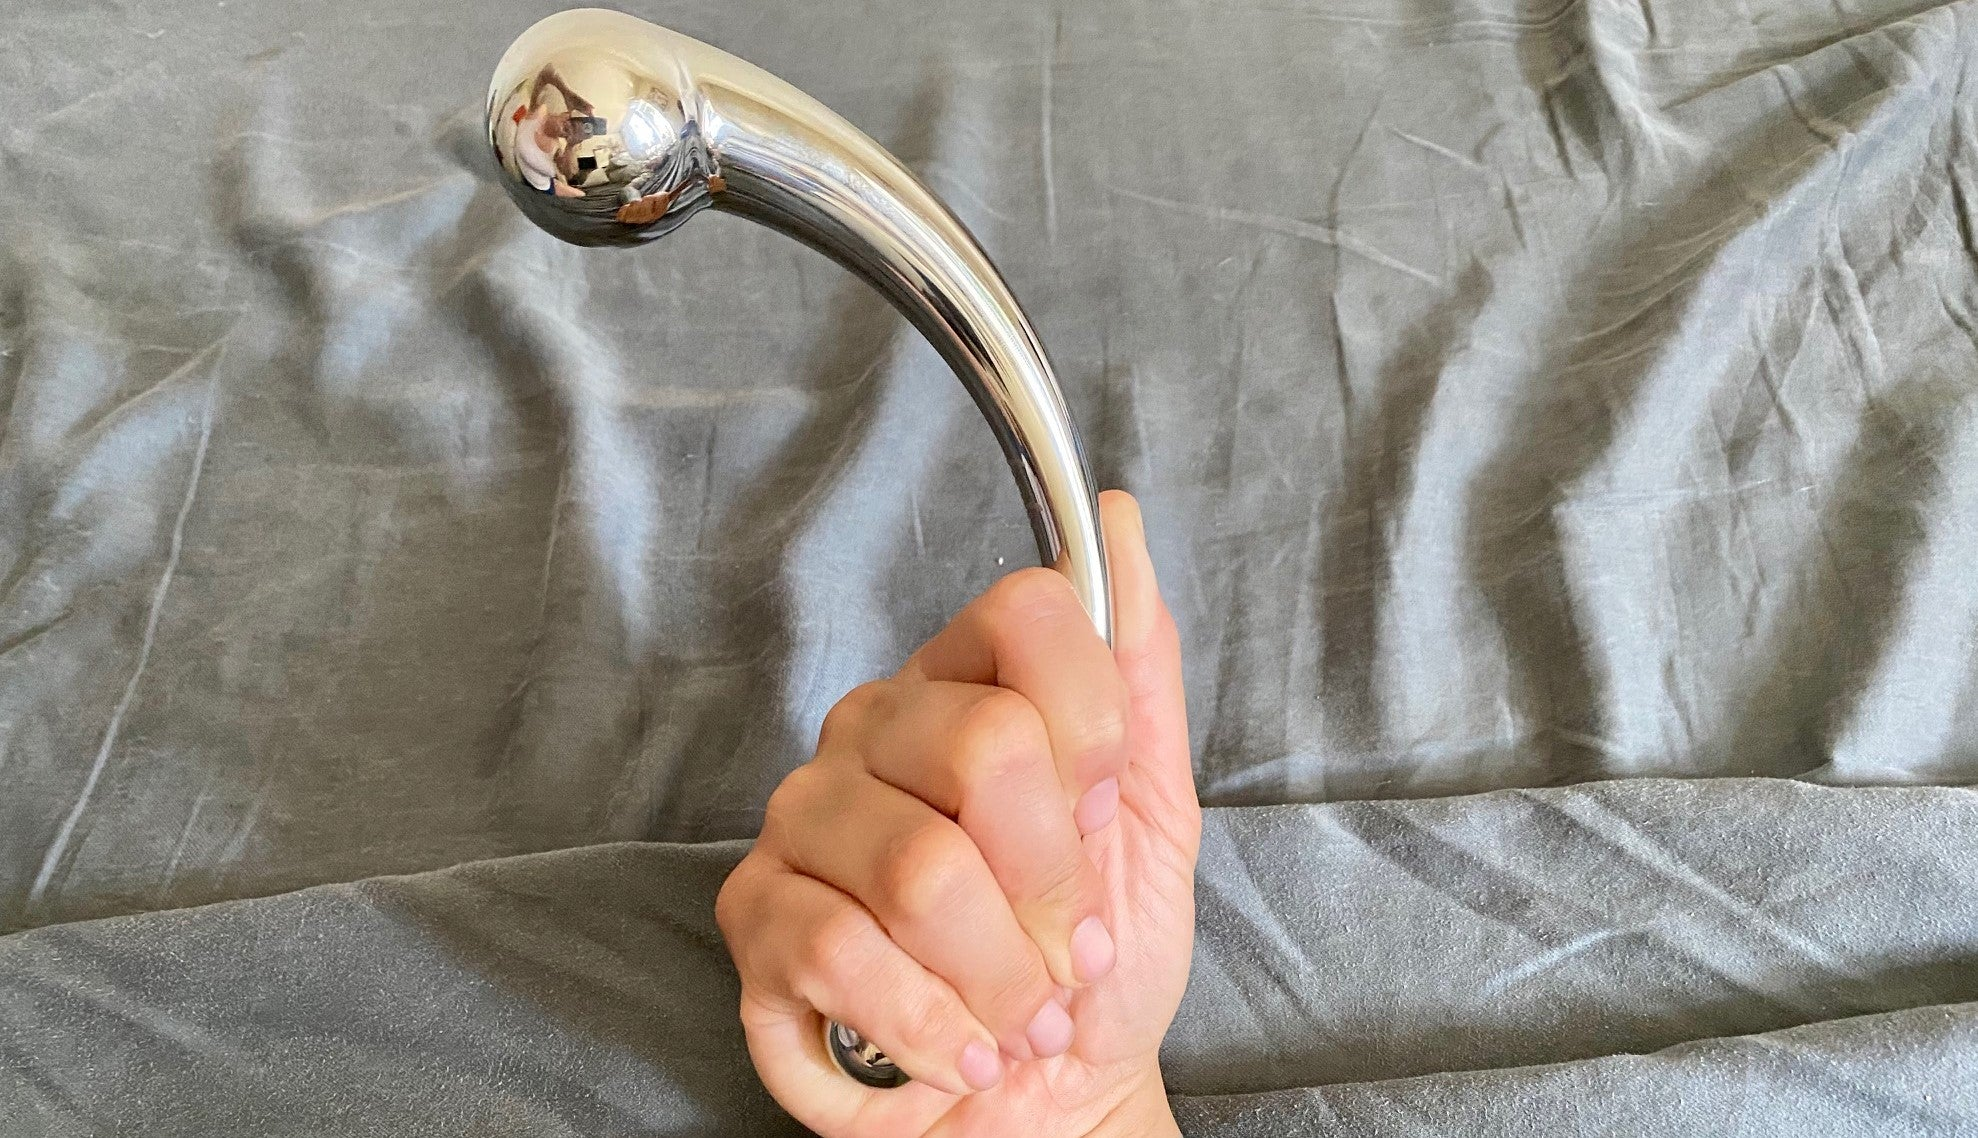 njoy pure wand stainless steel dildo